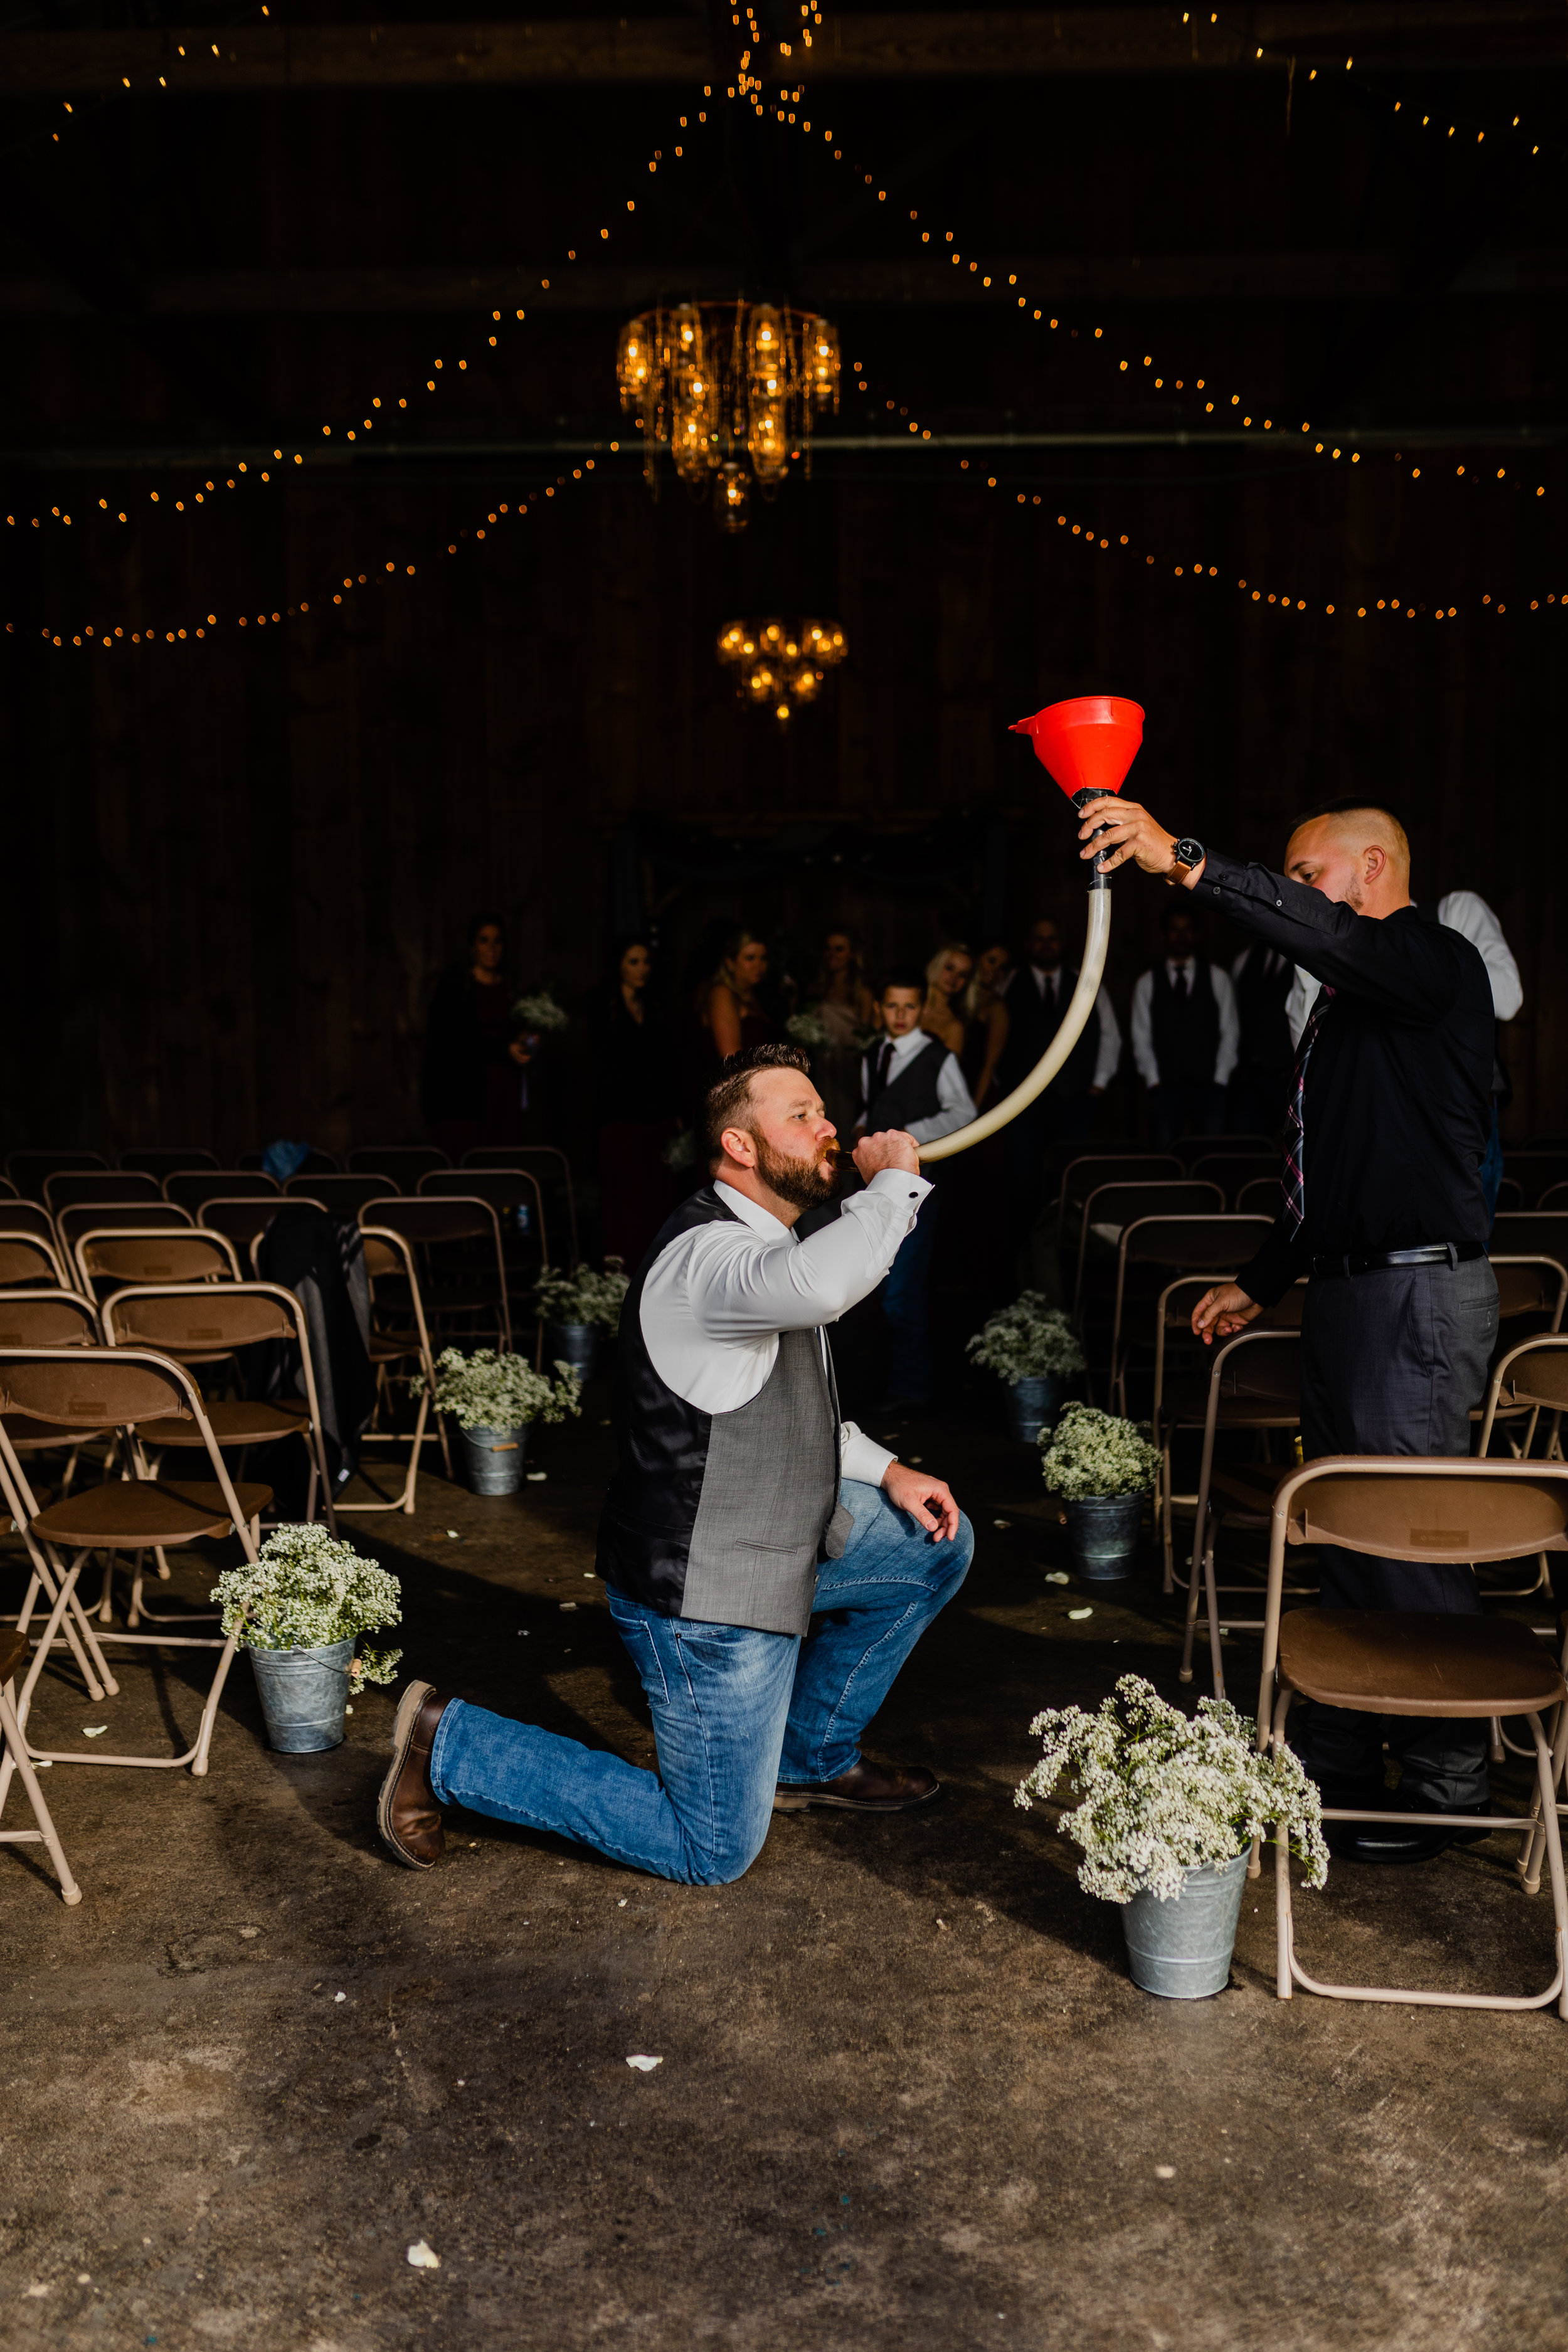 groom-doing-a-beer-bong-after-ceremony.jpg